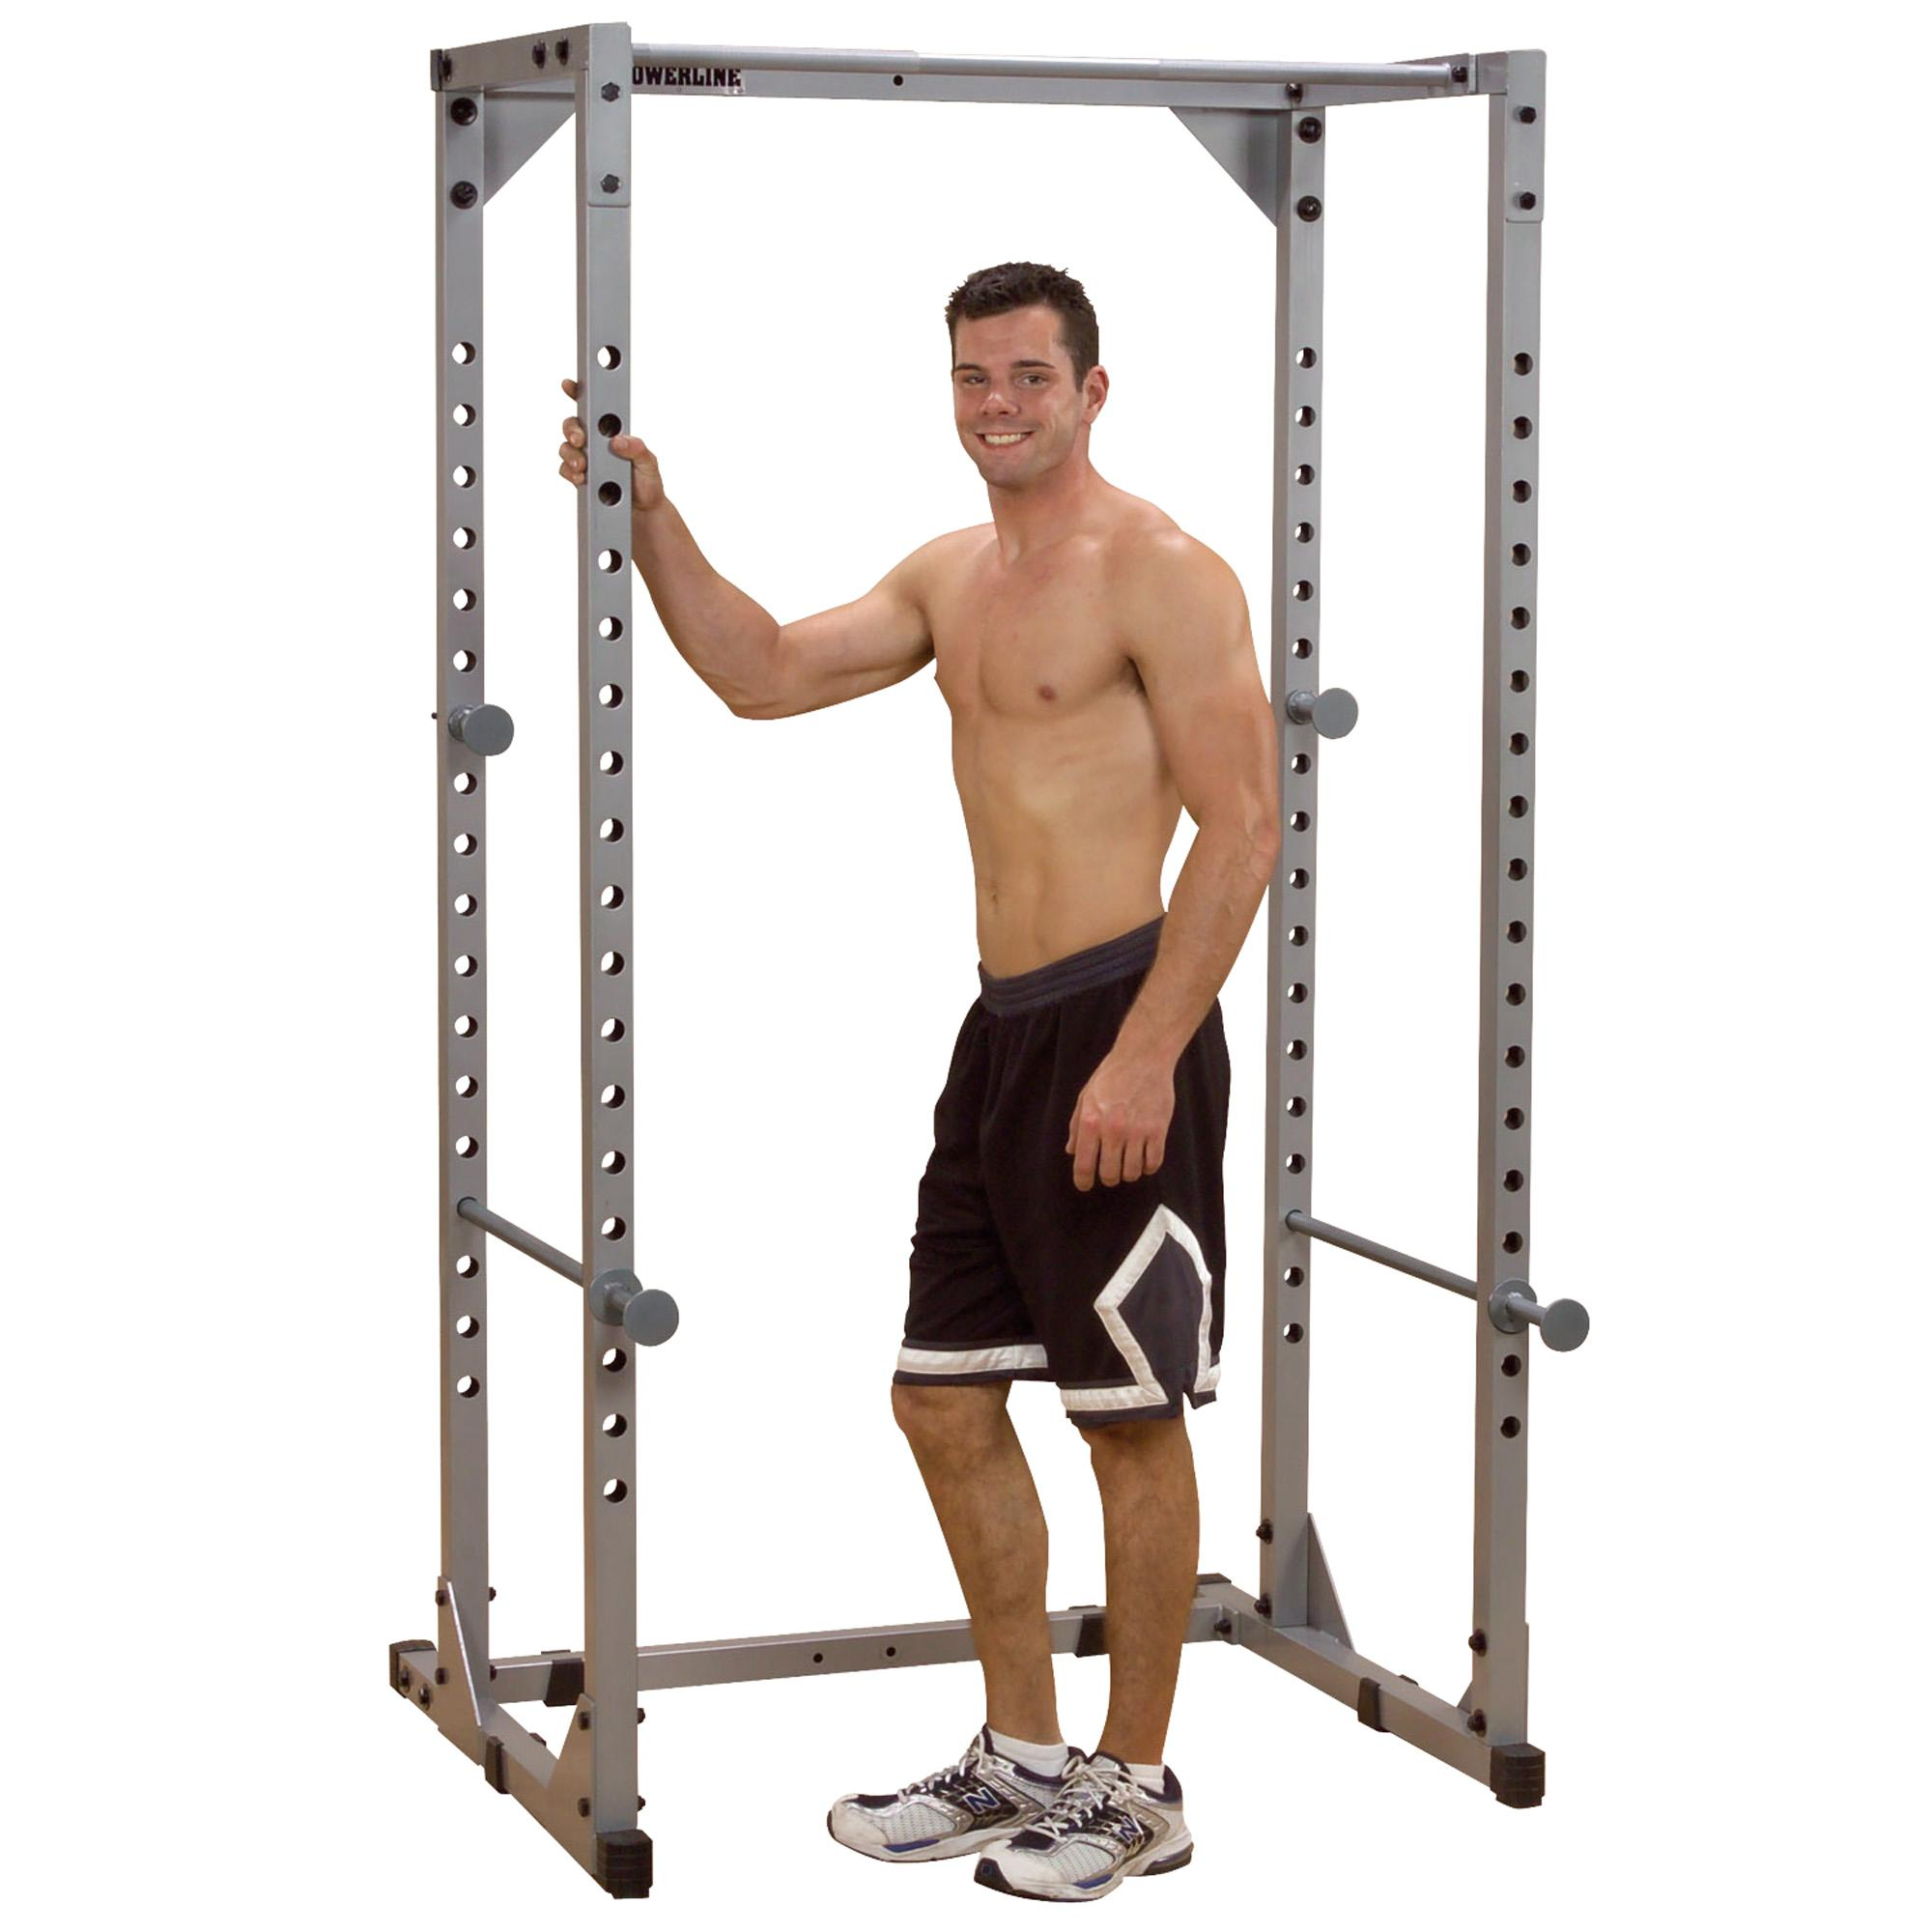 tighter a great little powertec olympic rack used space is cages singapore and what several barbell been but it the half who have saver for racks sale power feedback re racking in our customers has when